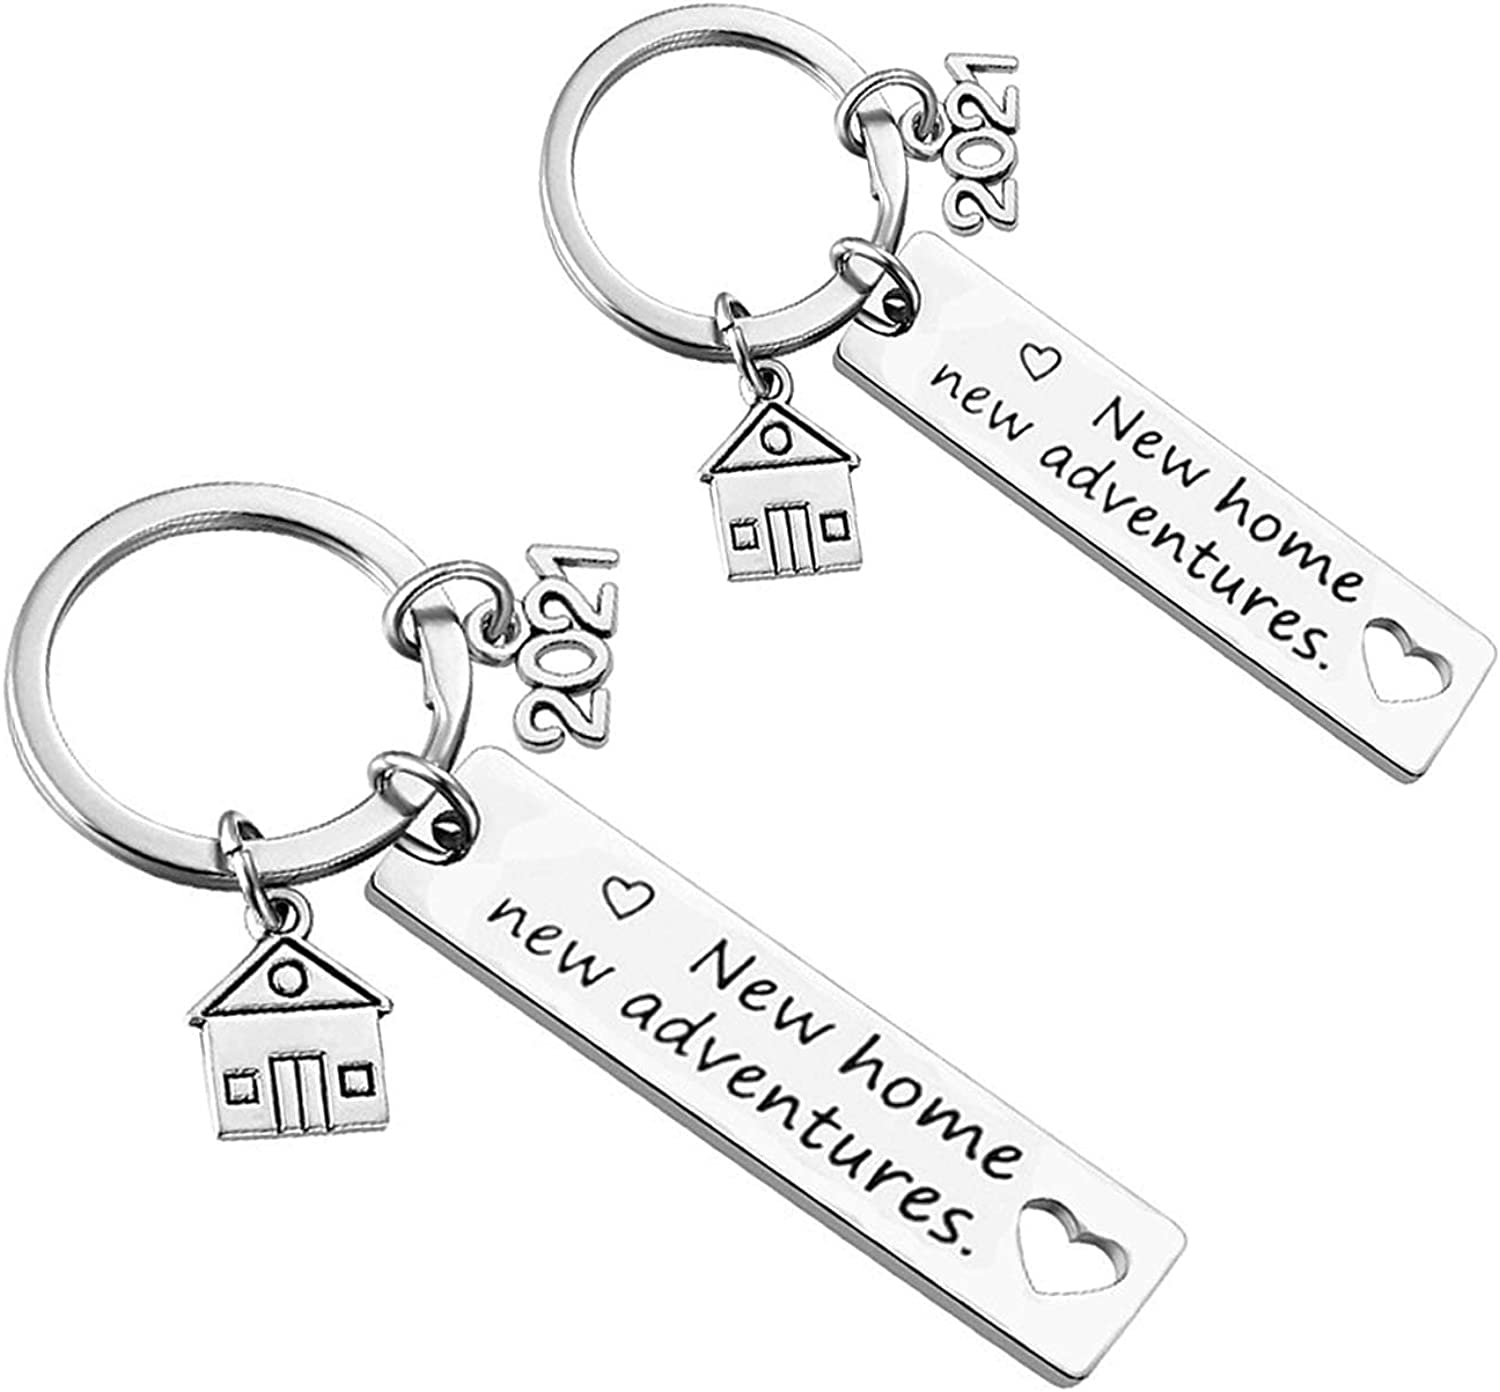 New Home Keychain 2021 Housewarming Gift for New Homeowner House Keyring Moving in Key Chain New Home Owners Jewelry from Real Estate Agent (2 Pack)